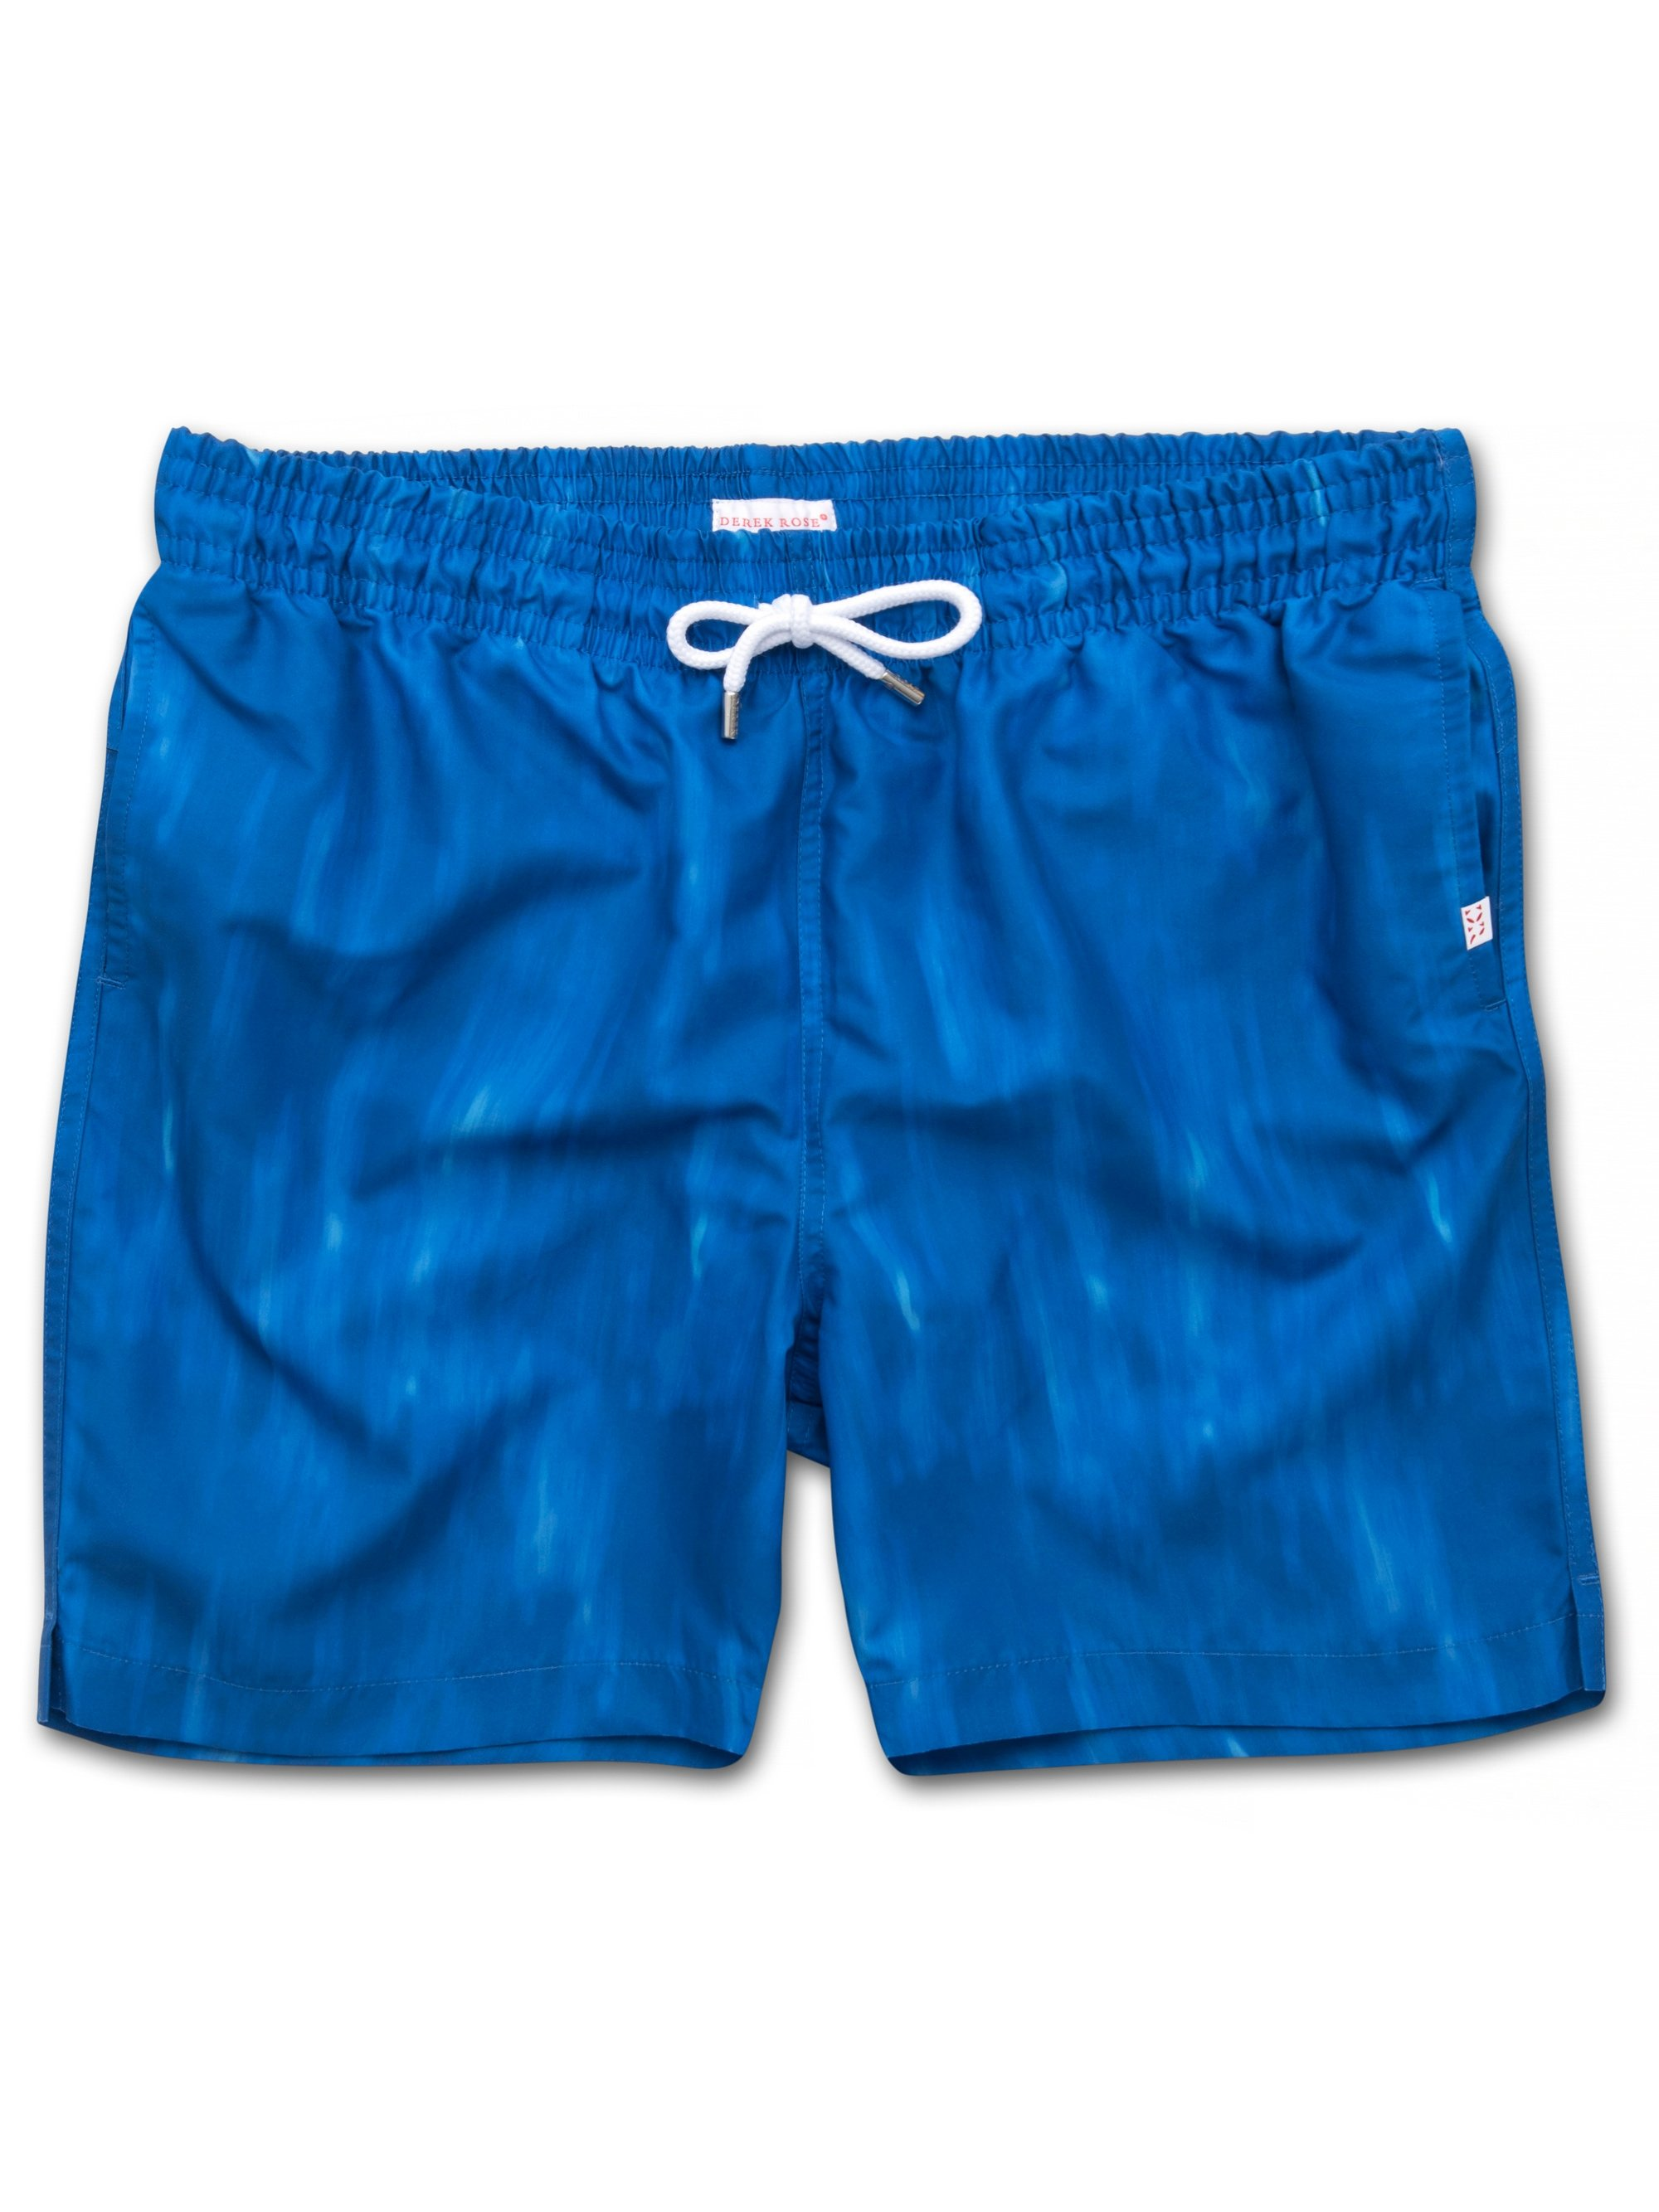 Men's Classic Fit Swim Shorts Maui 23 Blue